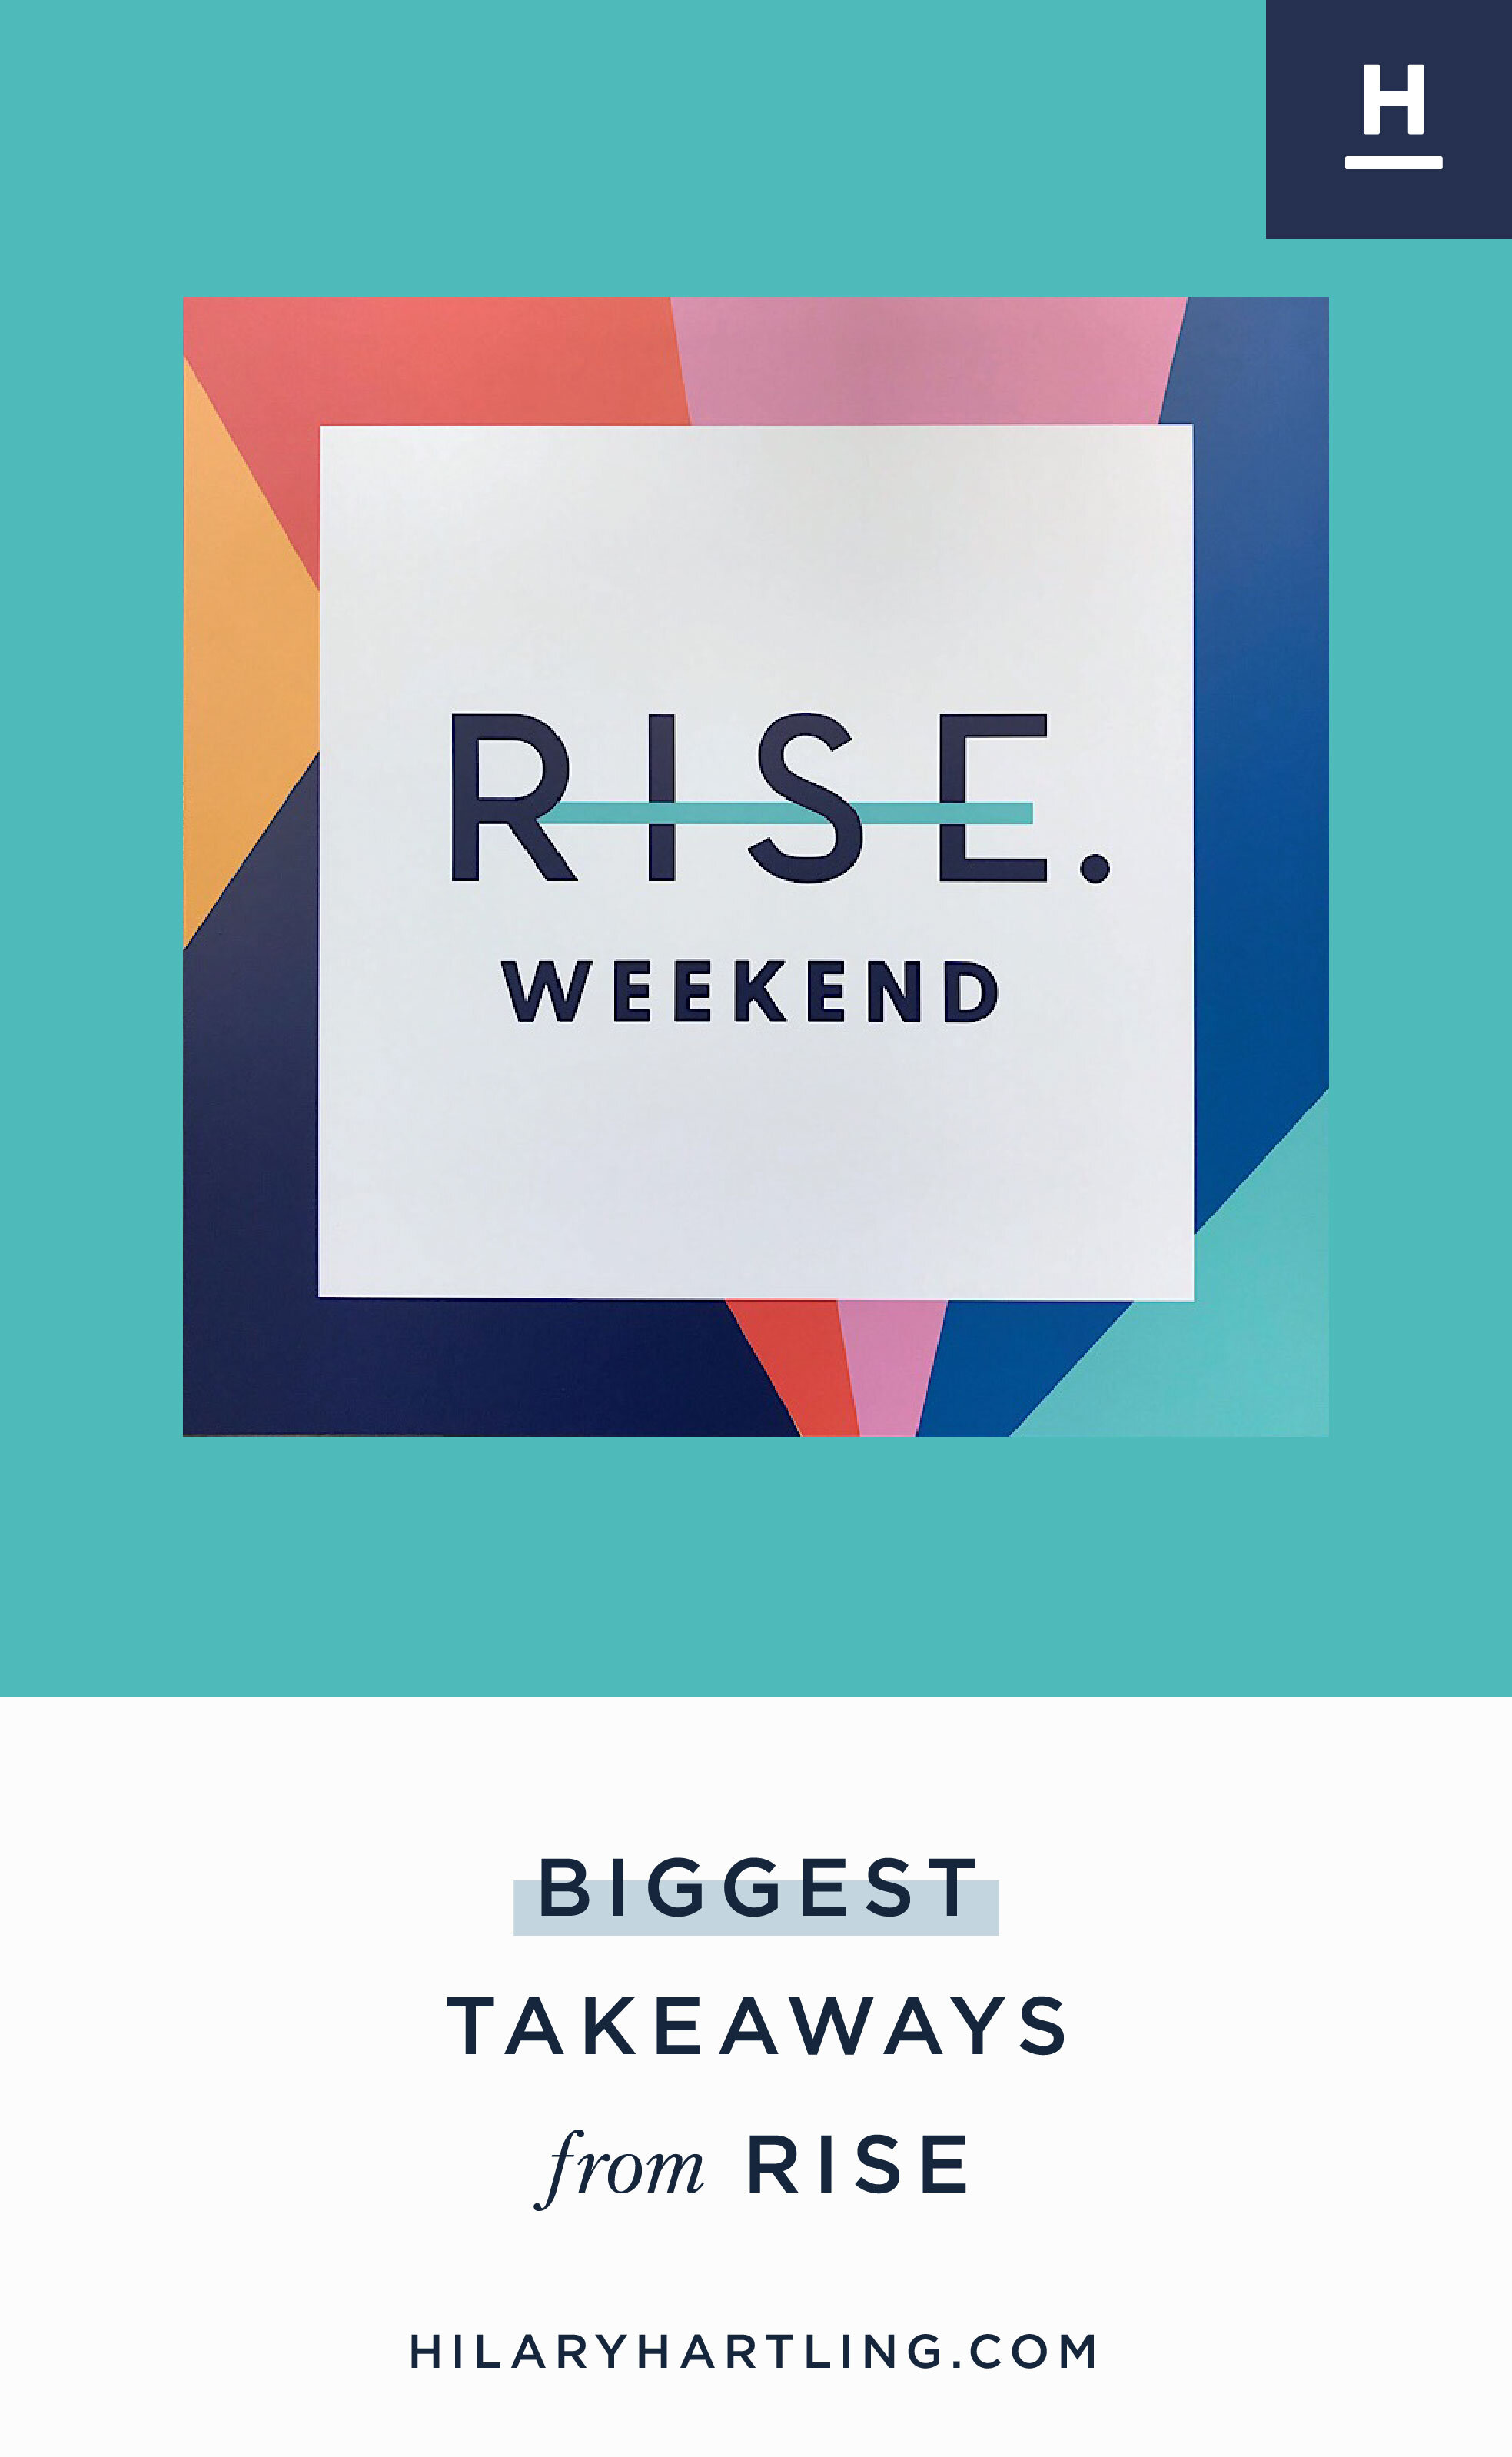 Biggest--Takeaways--from-RISE WEEKEND